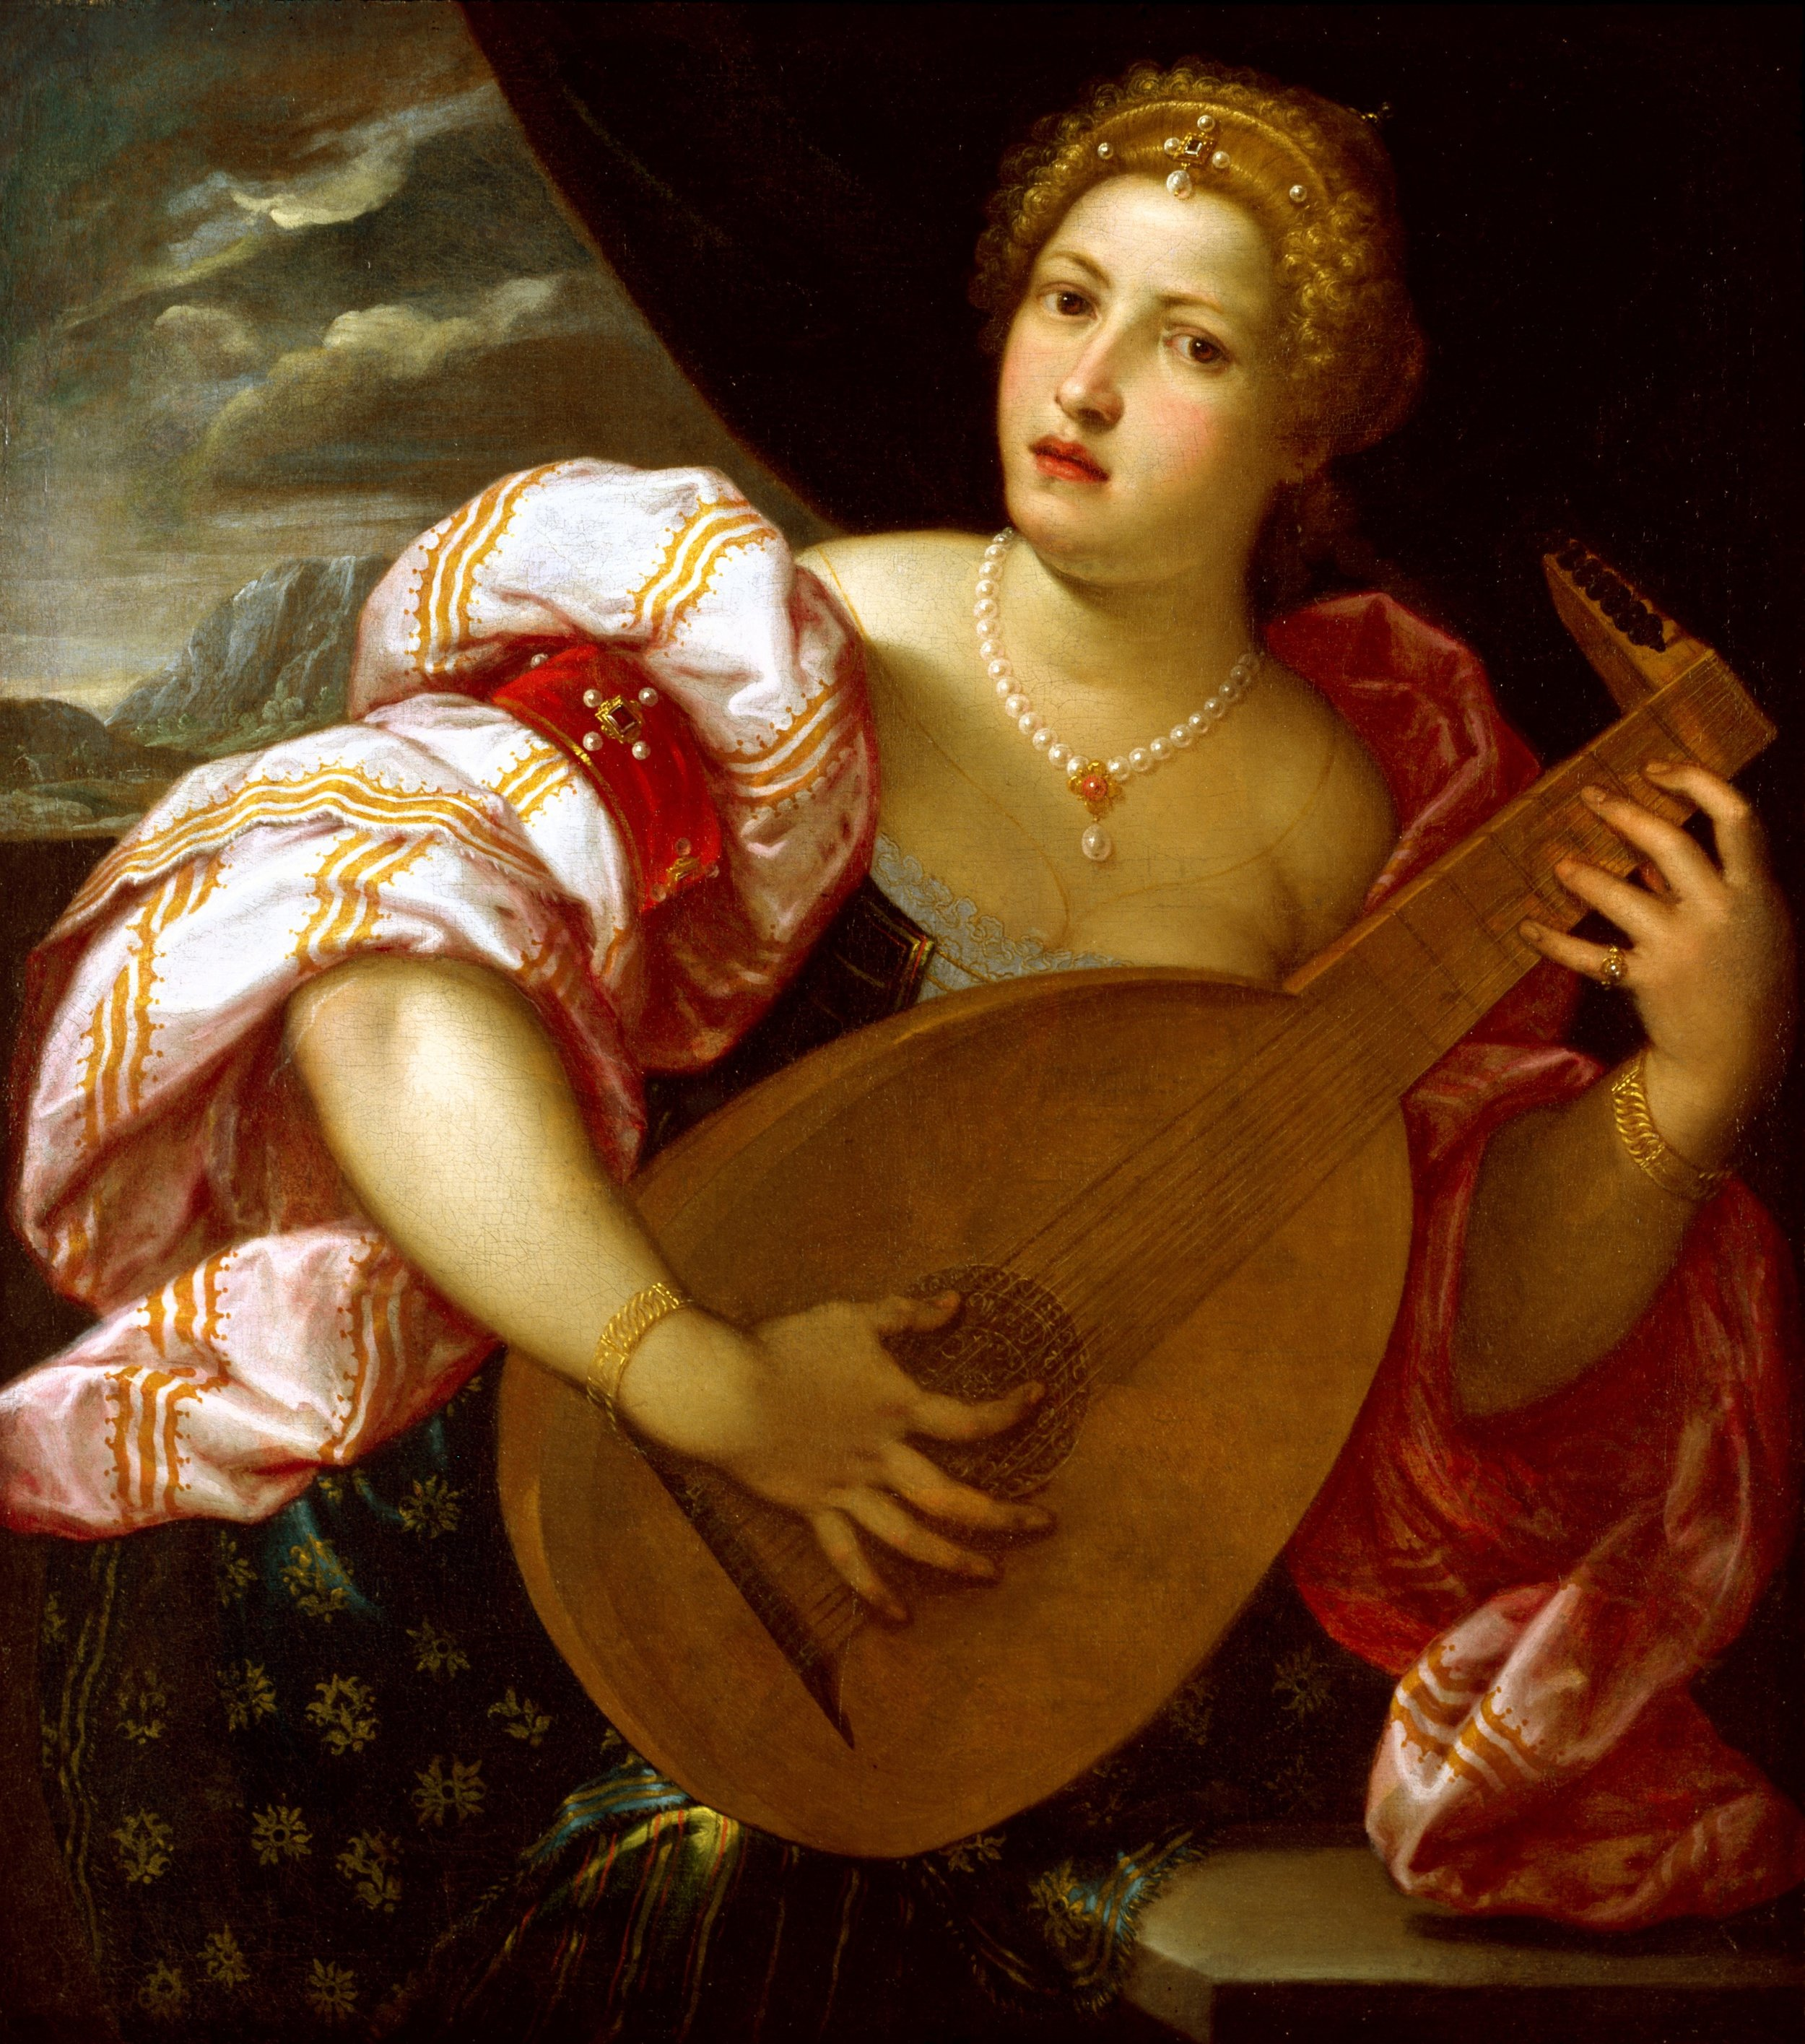 Thumb Out Example - Parrasio Micheli: Young Woman Playing a Lute